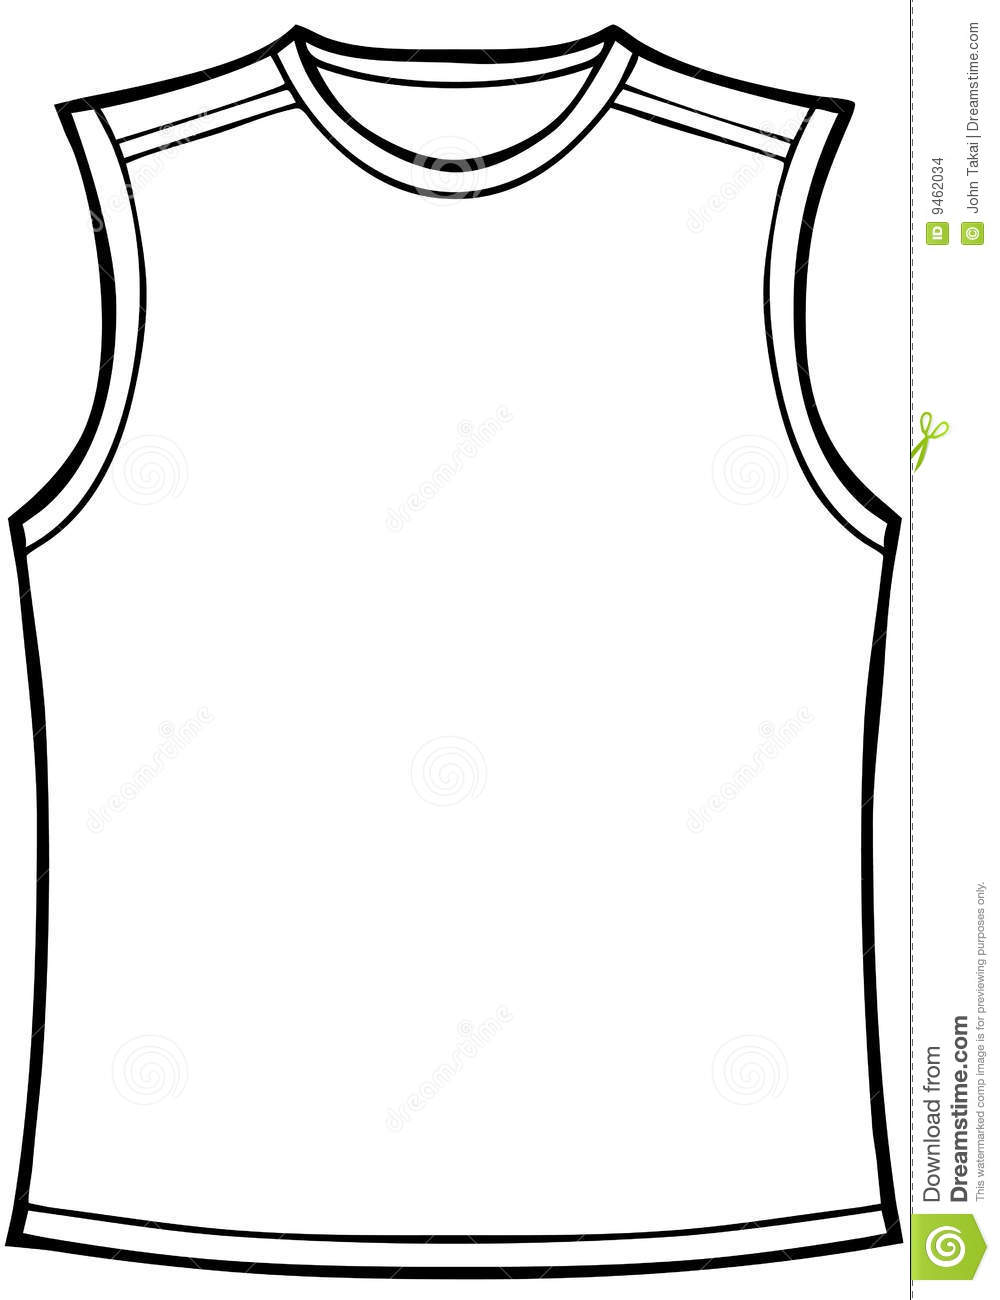 Clip Art Black And White Shirt Clipart.